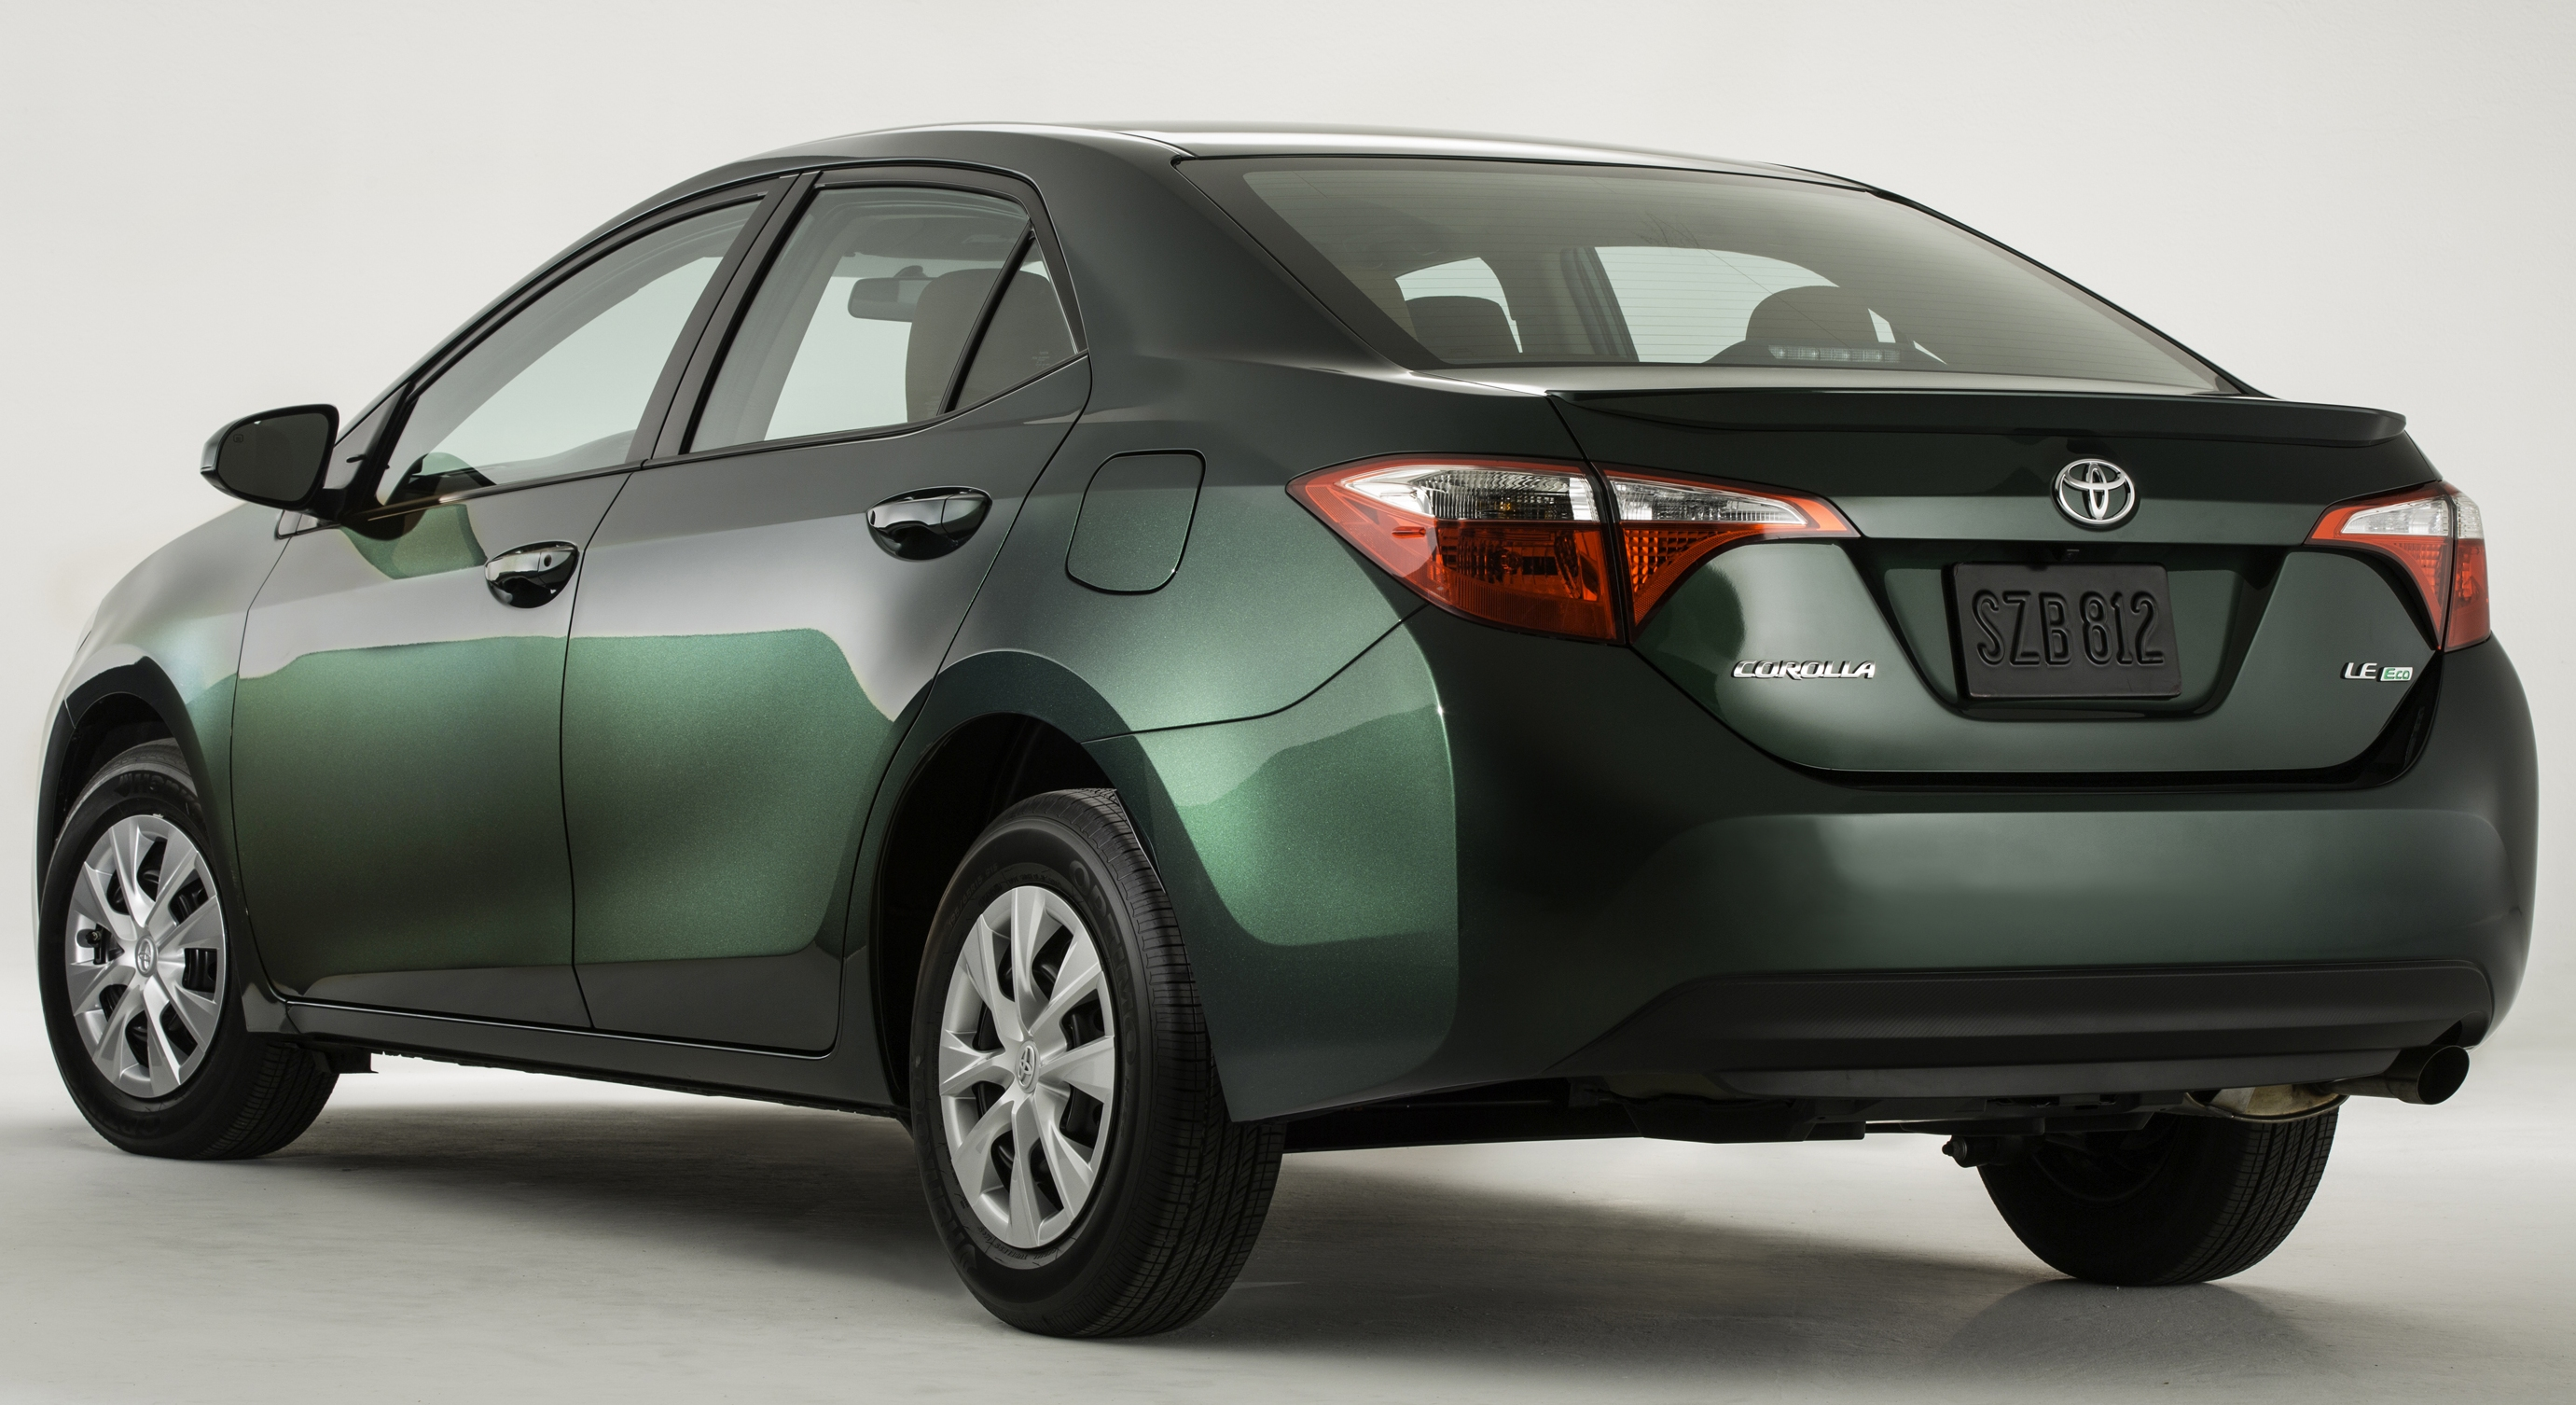 toyota corolla 2014 1 8 lts de 140 hp m s audaz alvolante info. Black Bedroom Furniture Sets. Home Design Ideas